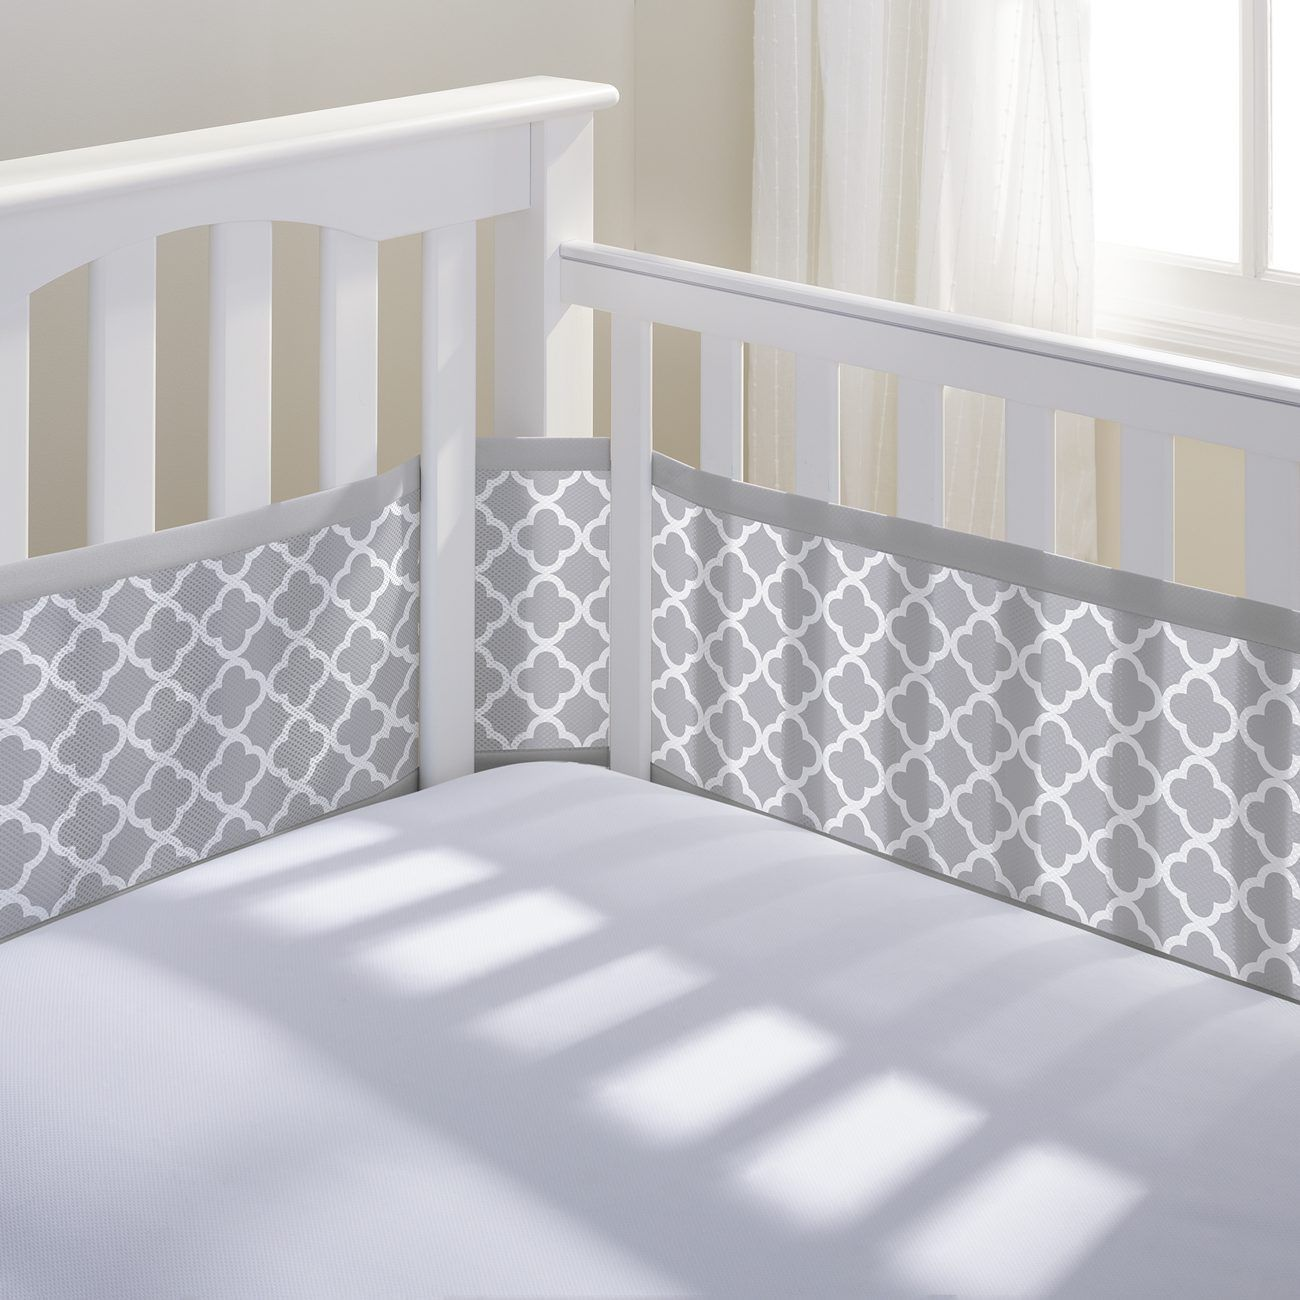 Crib for sale gatineau - Breathable Baby Mesh Crib Liner Gray Clover A Safe Bumper For Baby S Crib Made Of